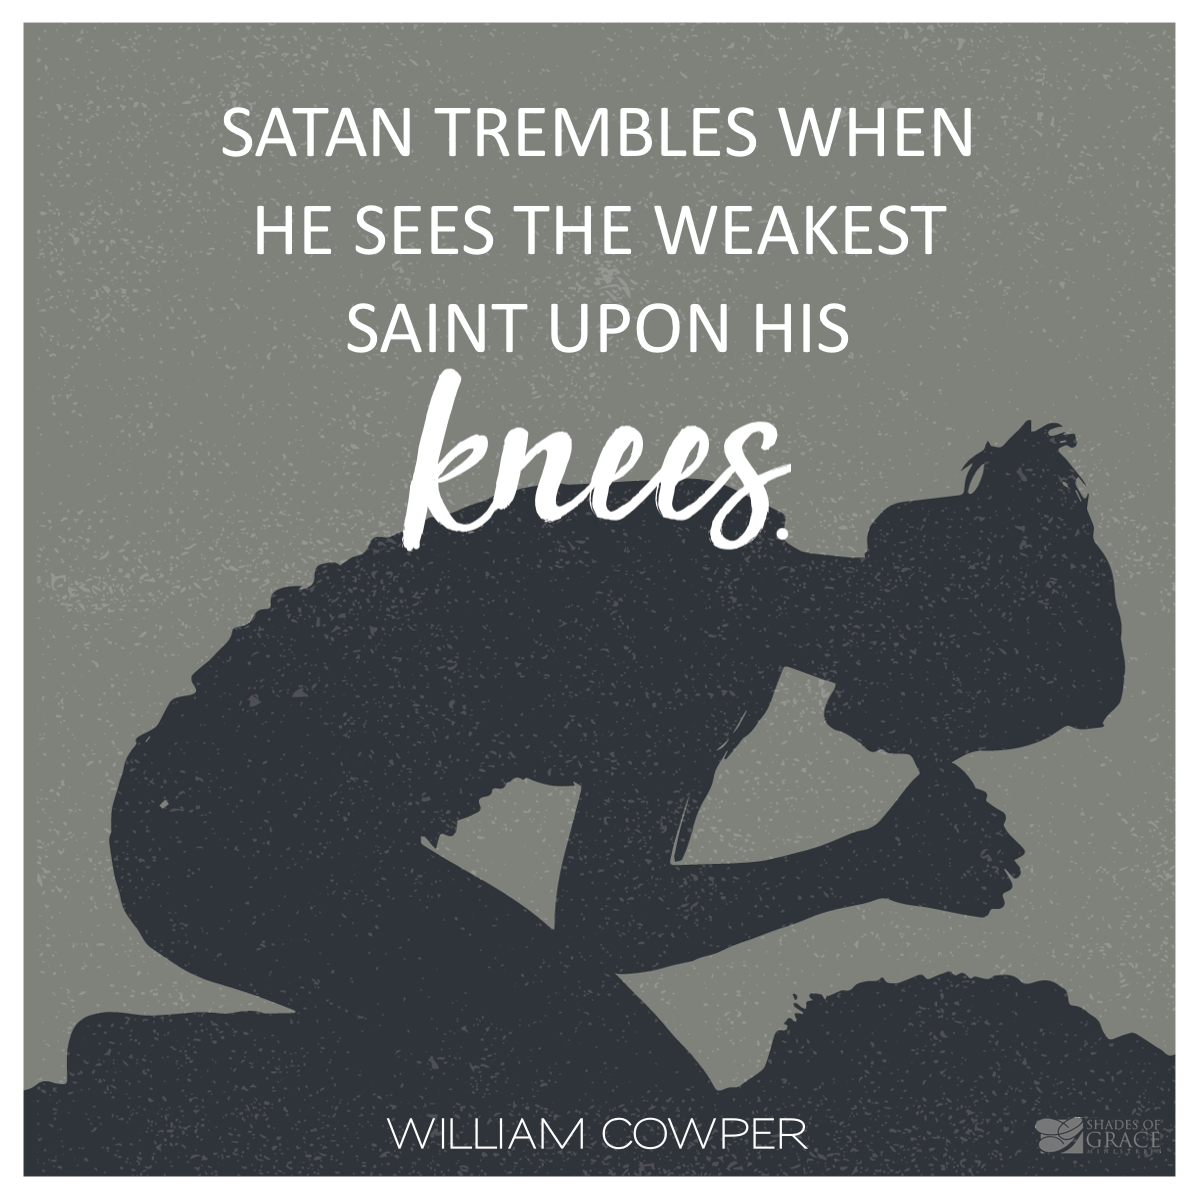 Satan trembles when he sees the weakest saint praying=